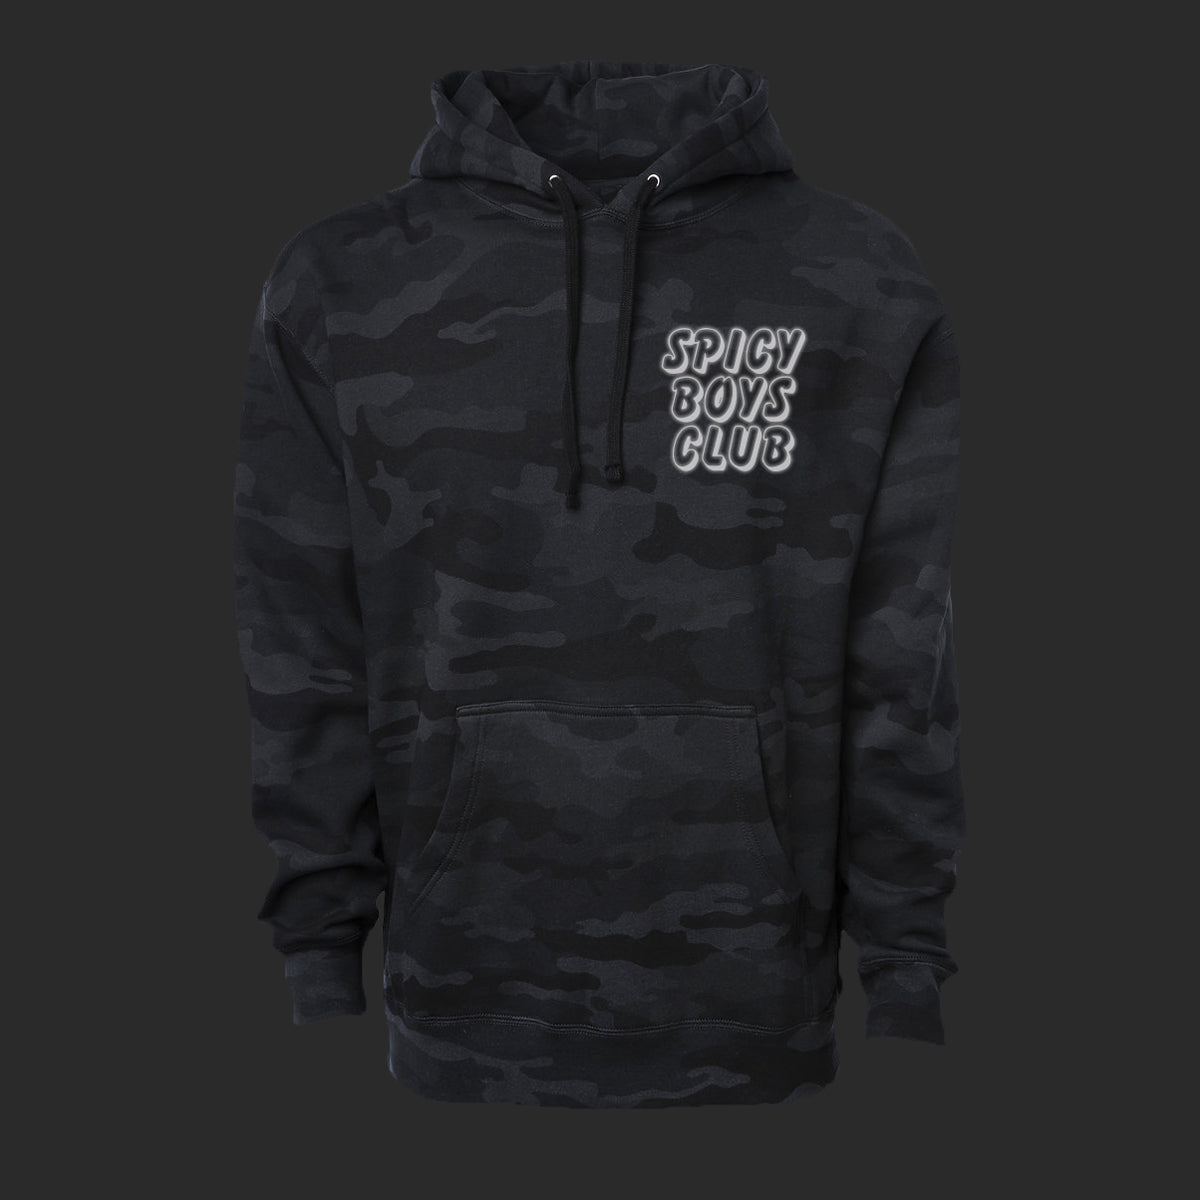 Reflective Spicy Boys Club Heavyweight Pullover Hoodie - Adventure Brand